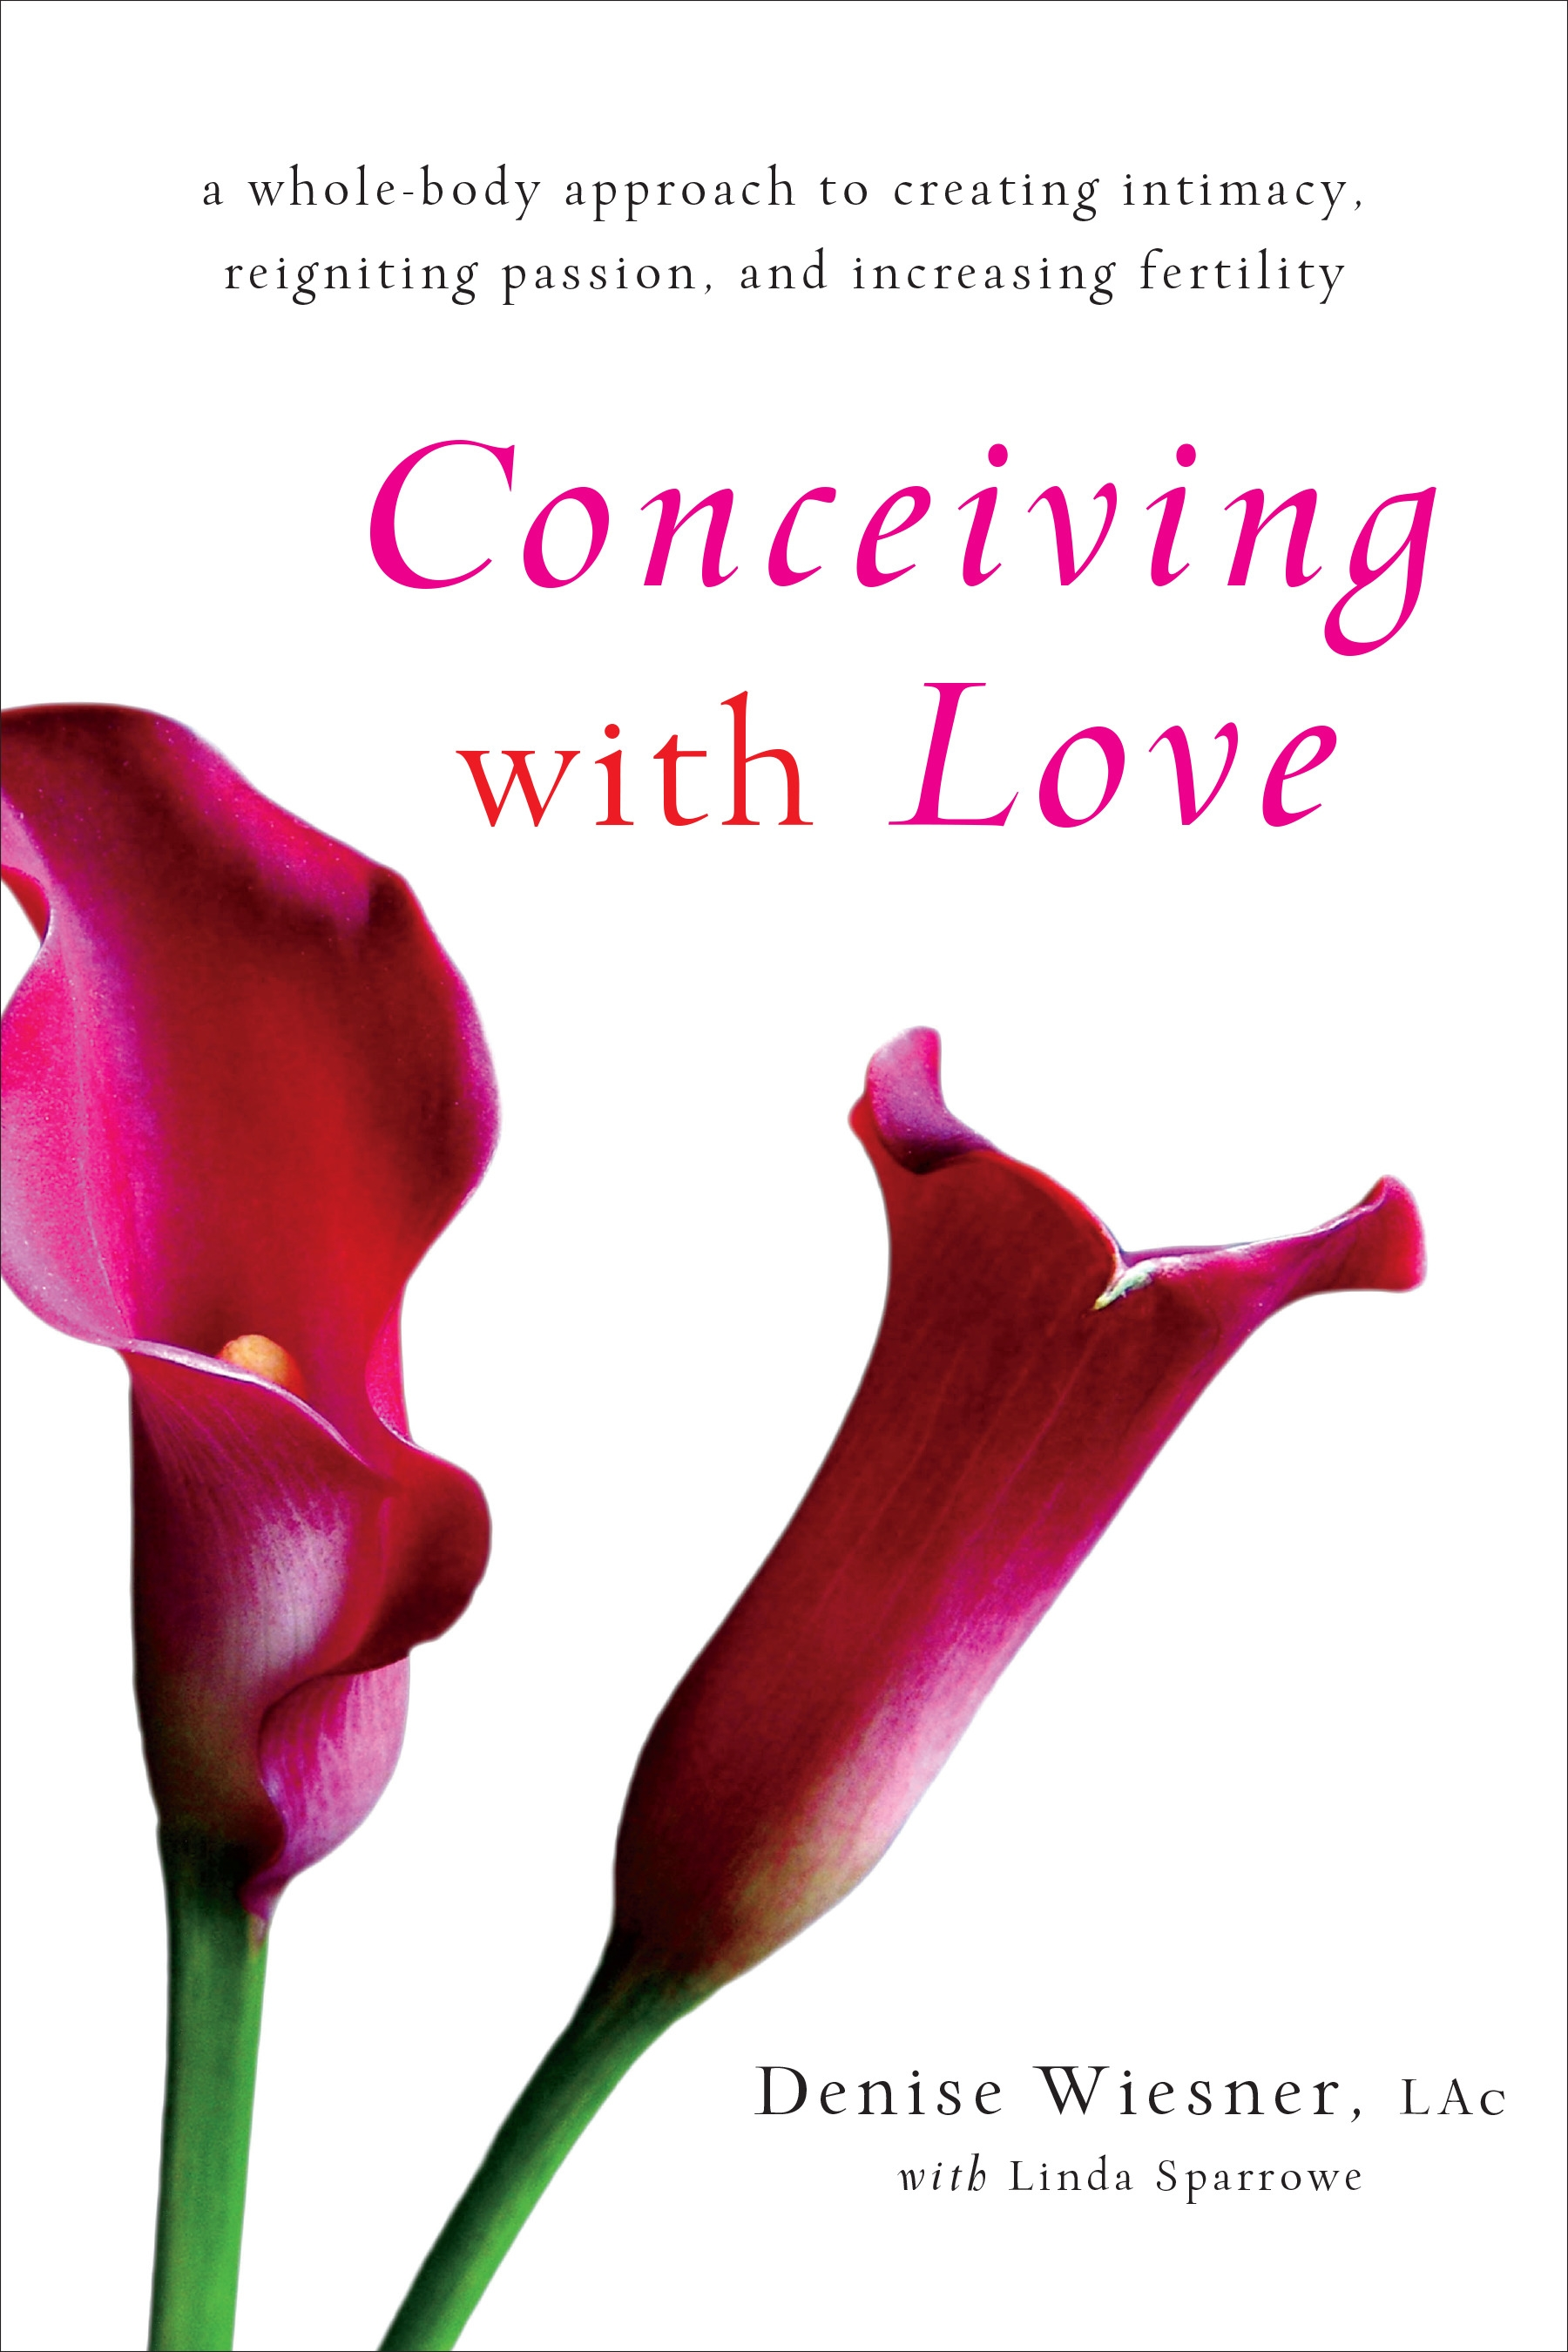 Conceiving With Love: A Whole-Body Approach To Creating Intimacy, Reigniting Passion, And Increasing